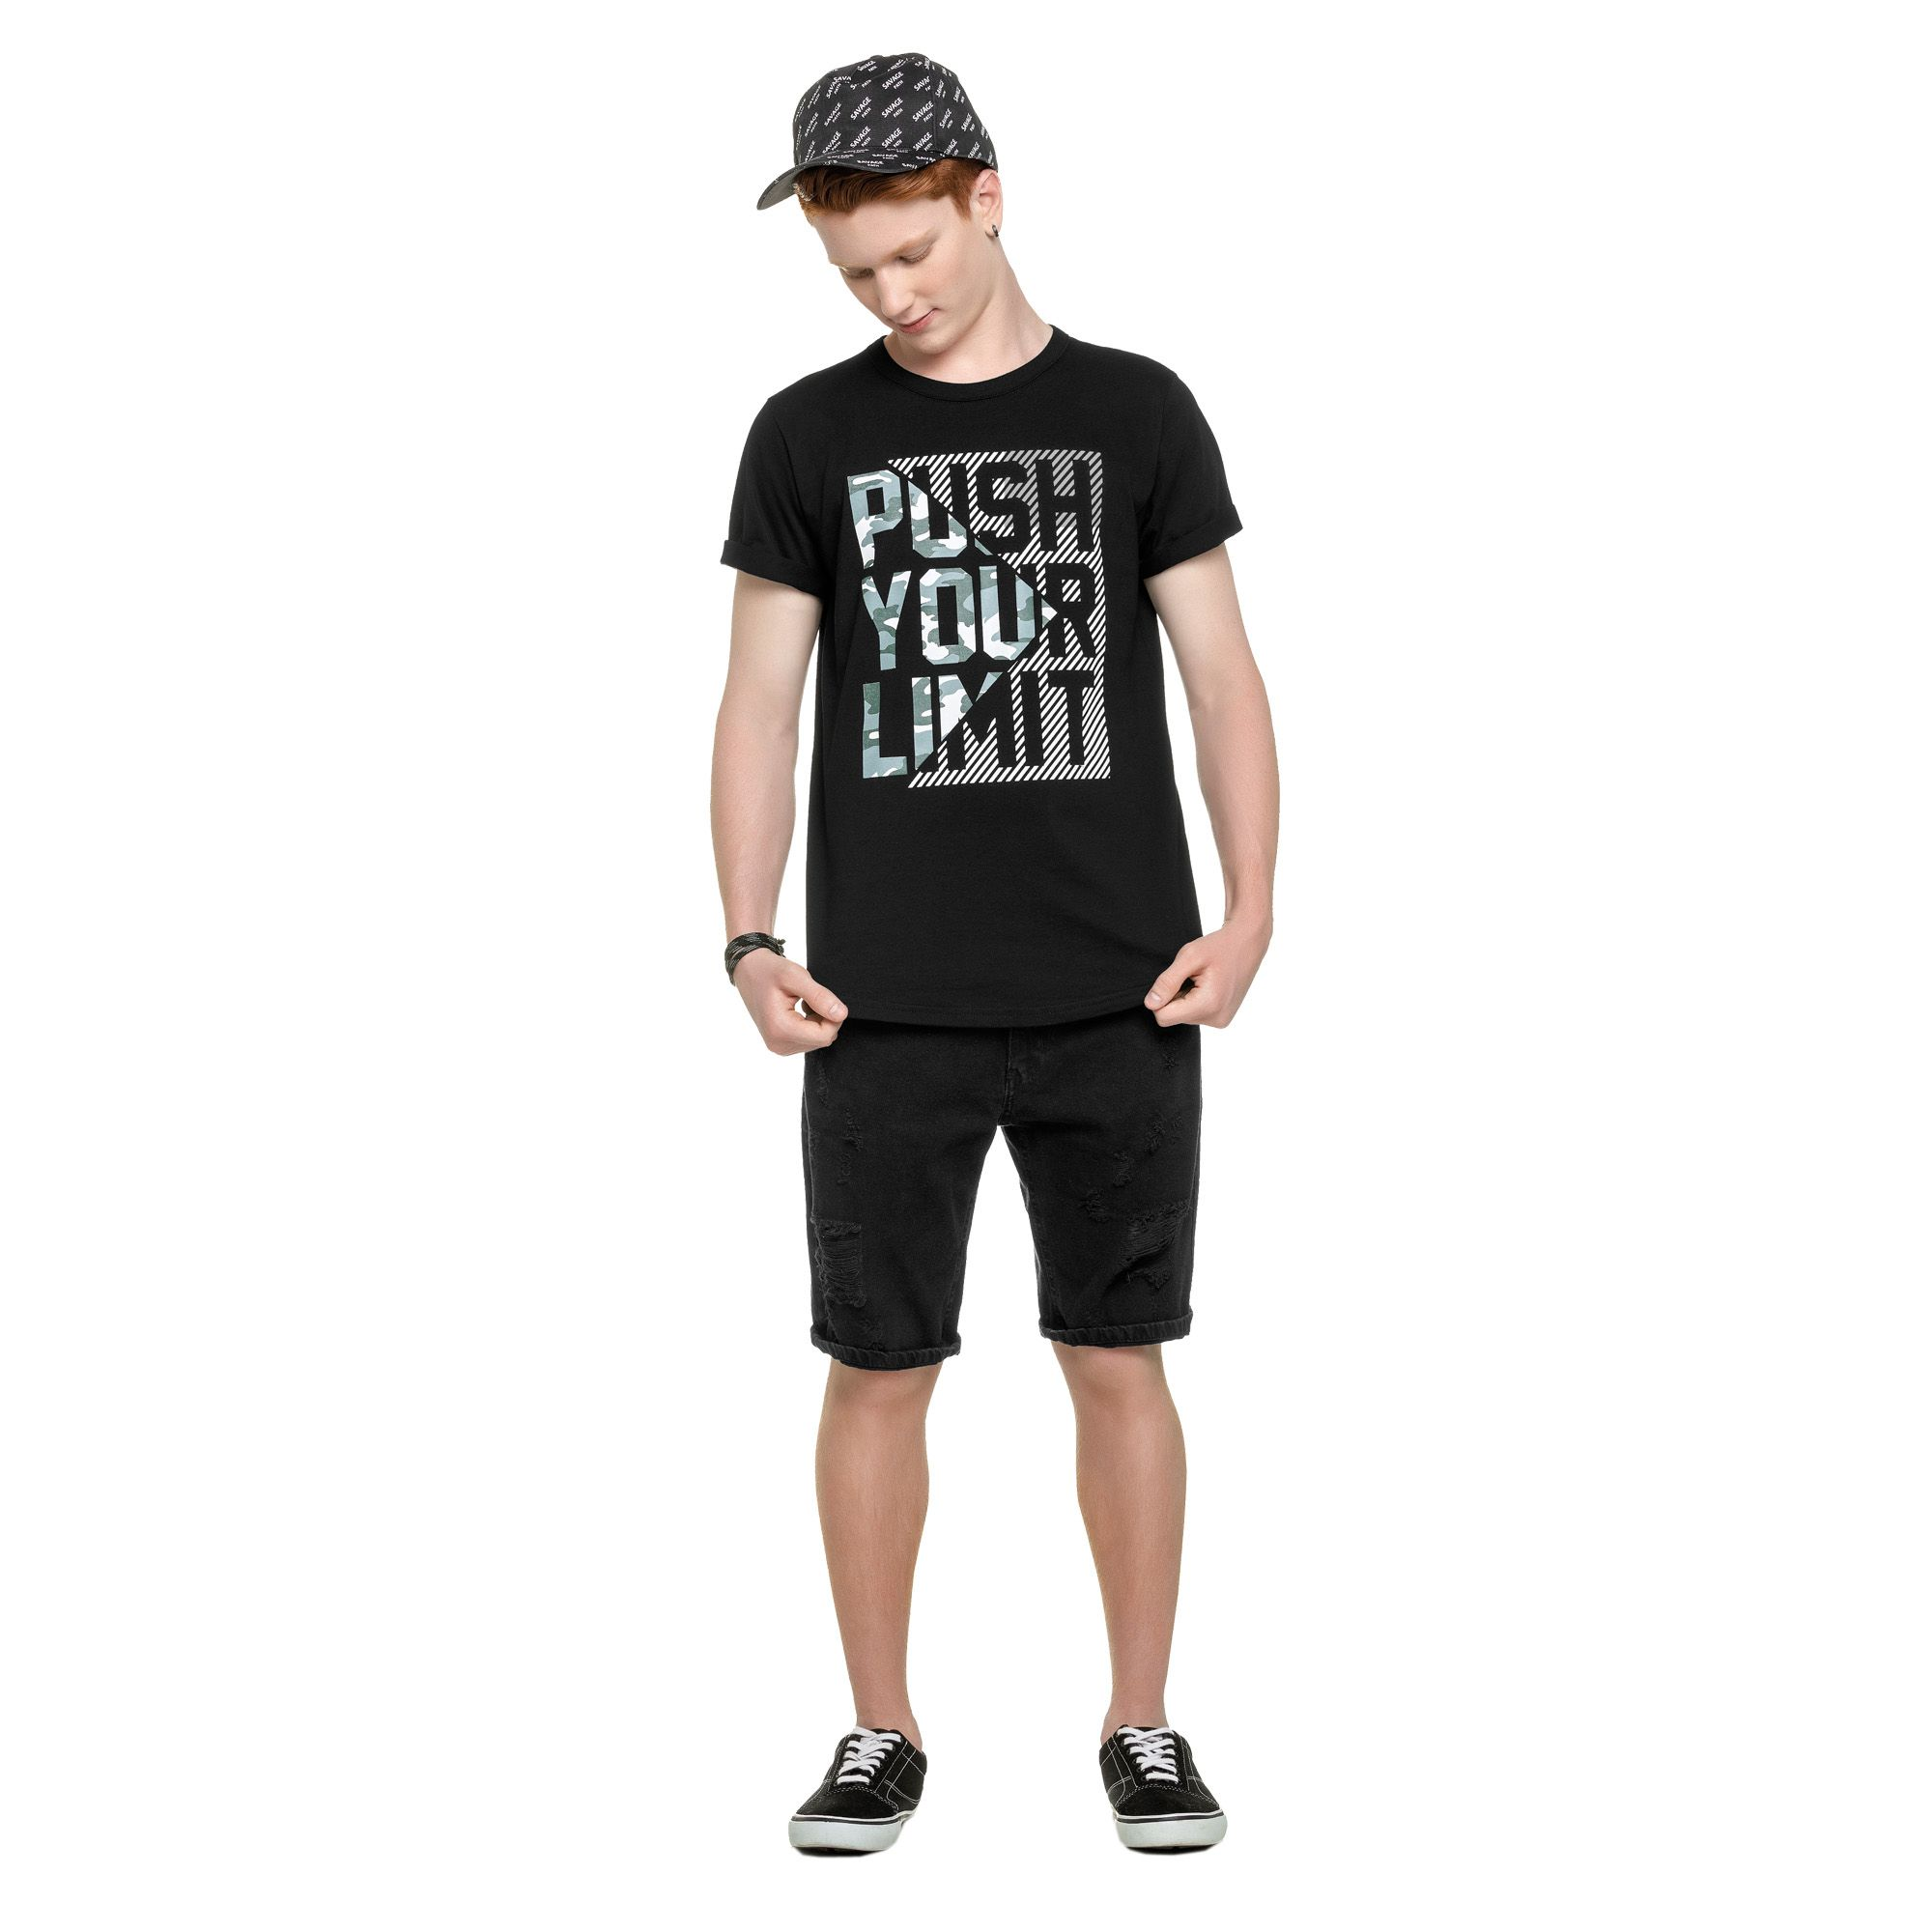 Camiseta Meia Manga Romitex Wyrky Push Your Limit - 12 ao 18